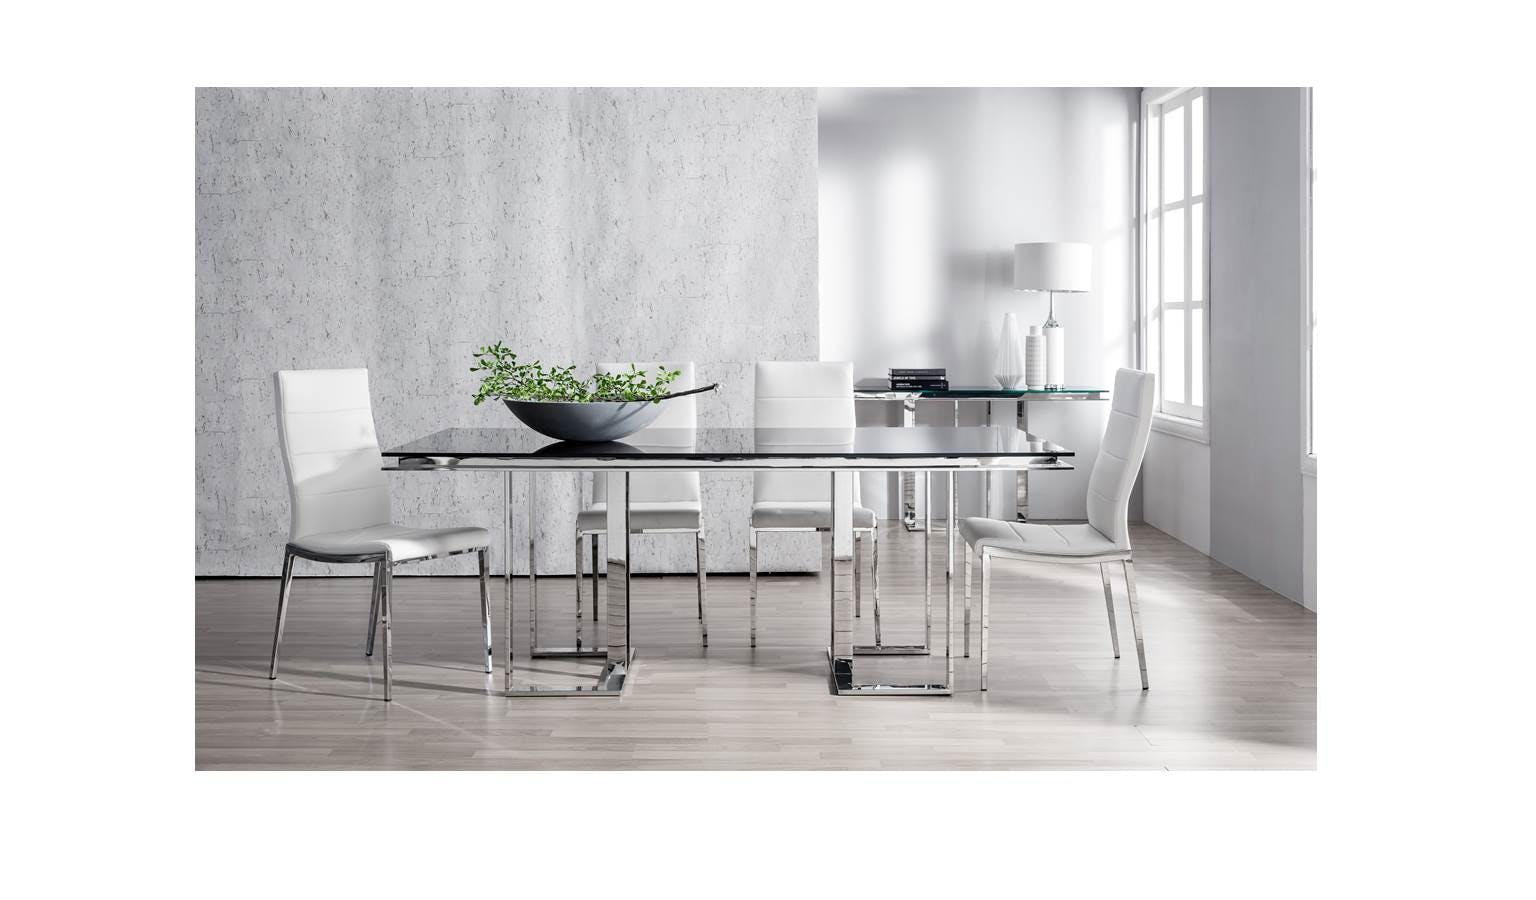 Merlino Vivix Mi11921 Imported Dining Table With Black Tempered Glass Top